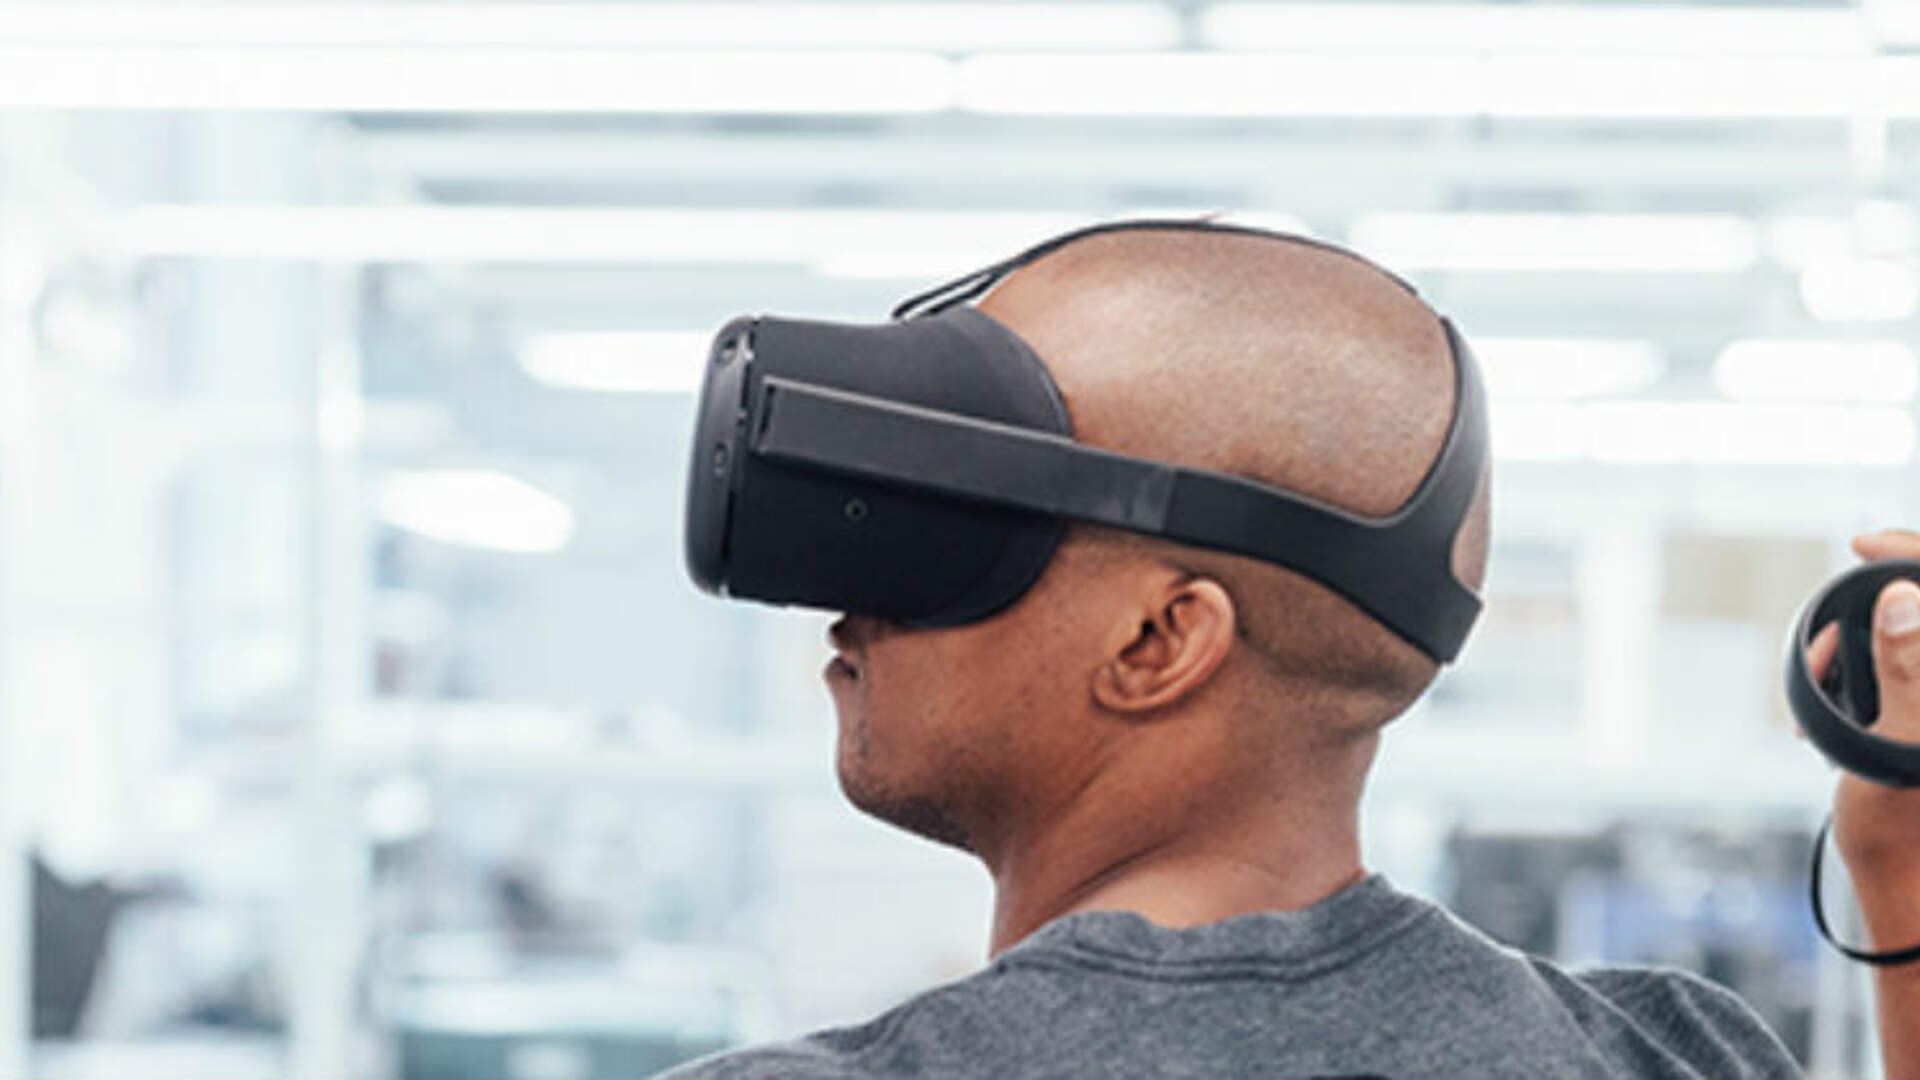 Oculus Santa Cruz is a Standalone VR Headset That Delivers PC-Levels of Quality